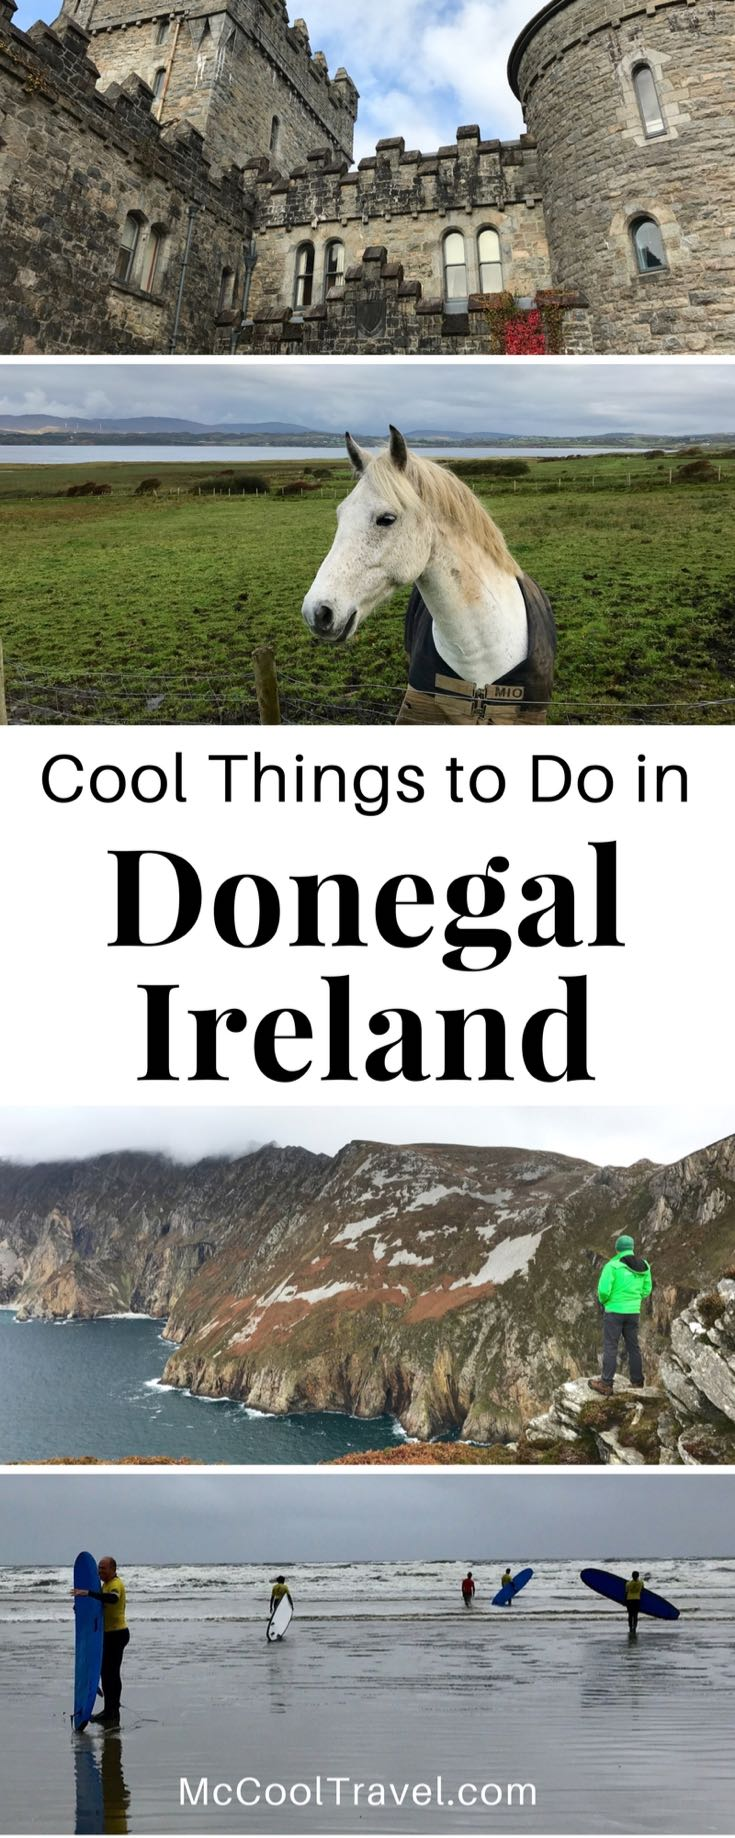 """Ireland travel. Donegal Ireland and Wild Atlantic Way. Cool things to do in Donegal Ireland span the rugged Wild Atlantic Way and explore unique hidden gems of """"the Coolest Place on Earth""""."""